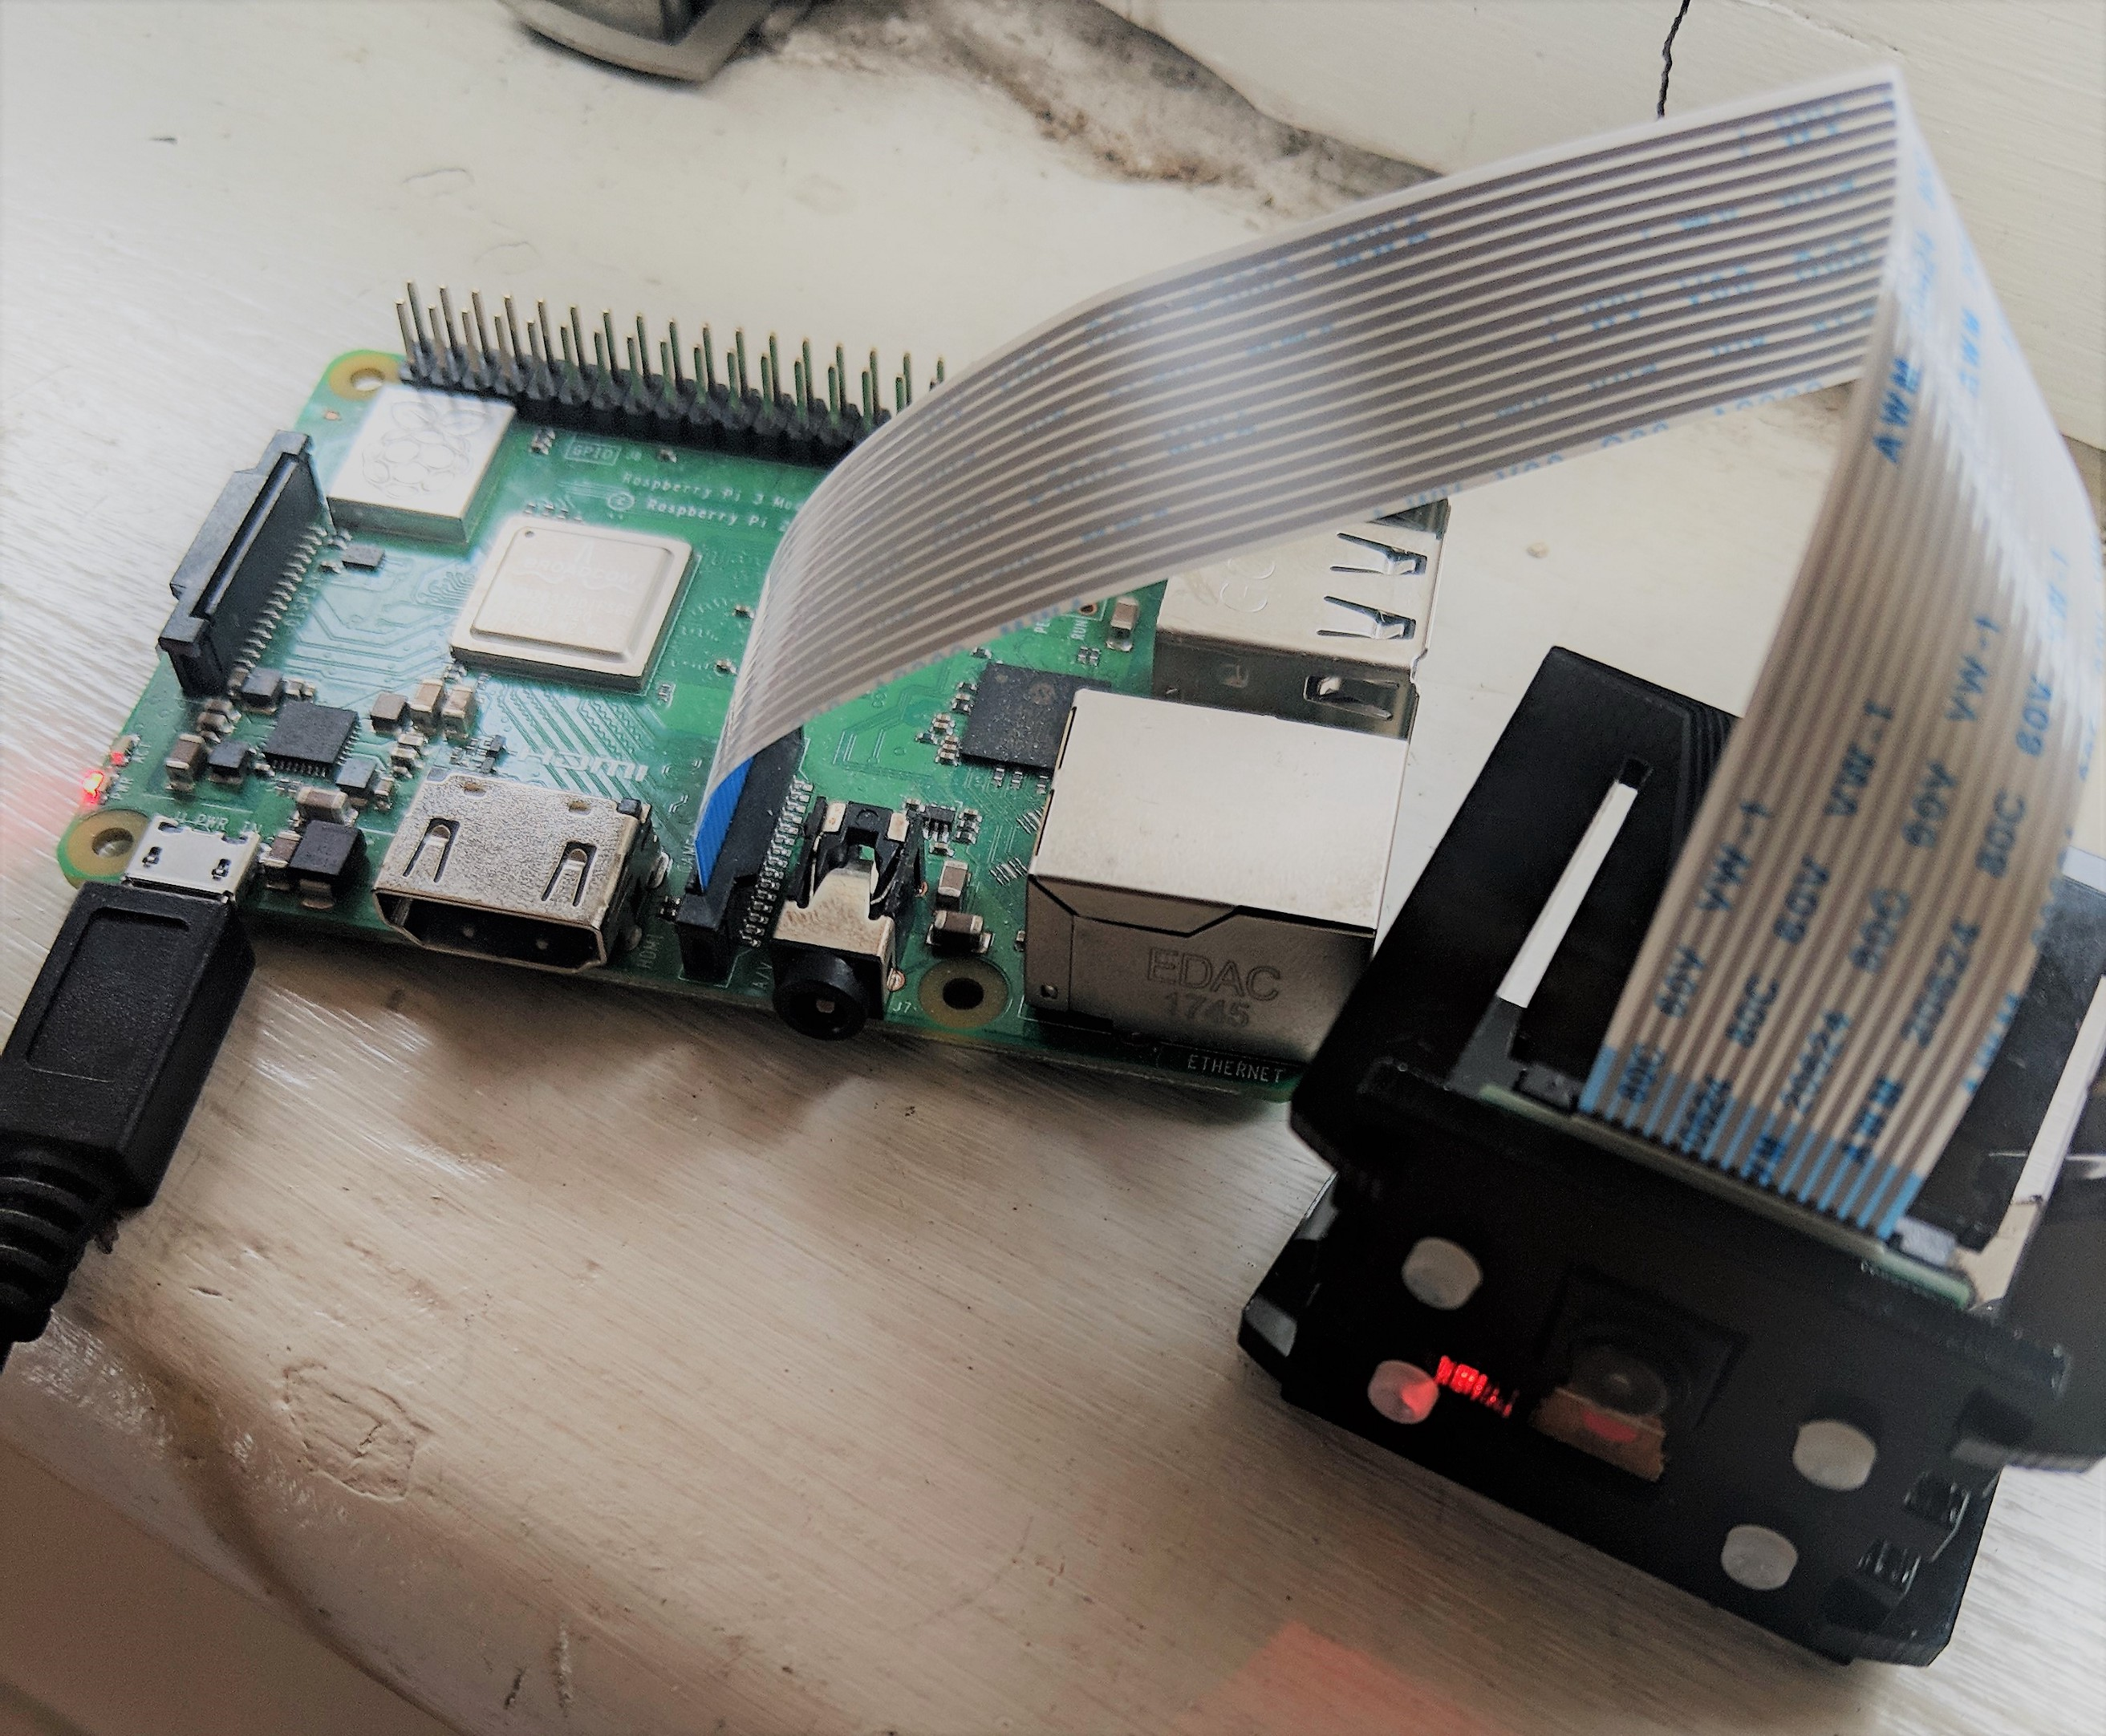 Shinobi Raspberry Pi